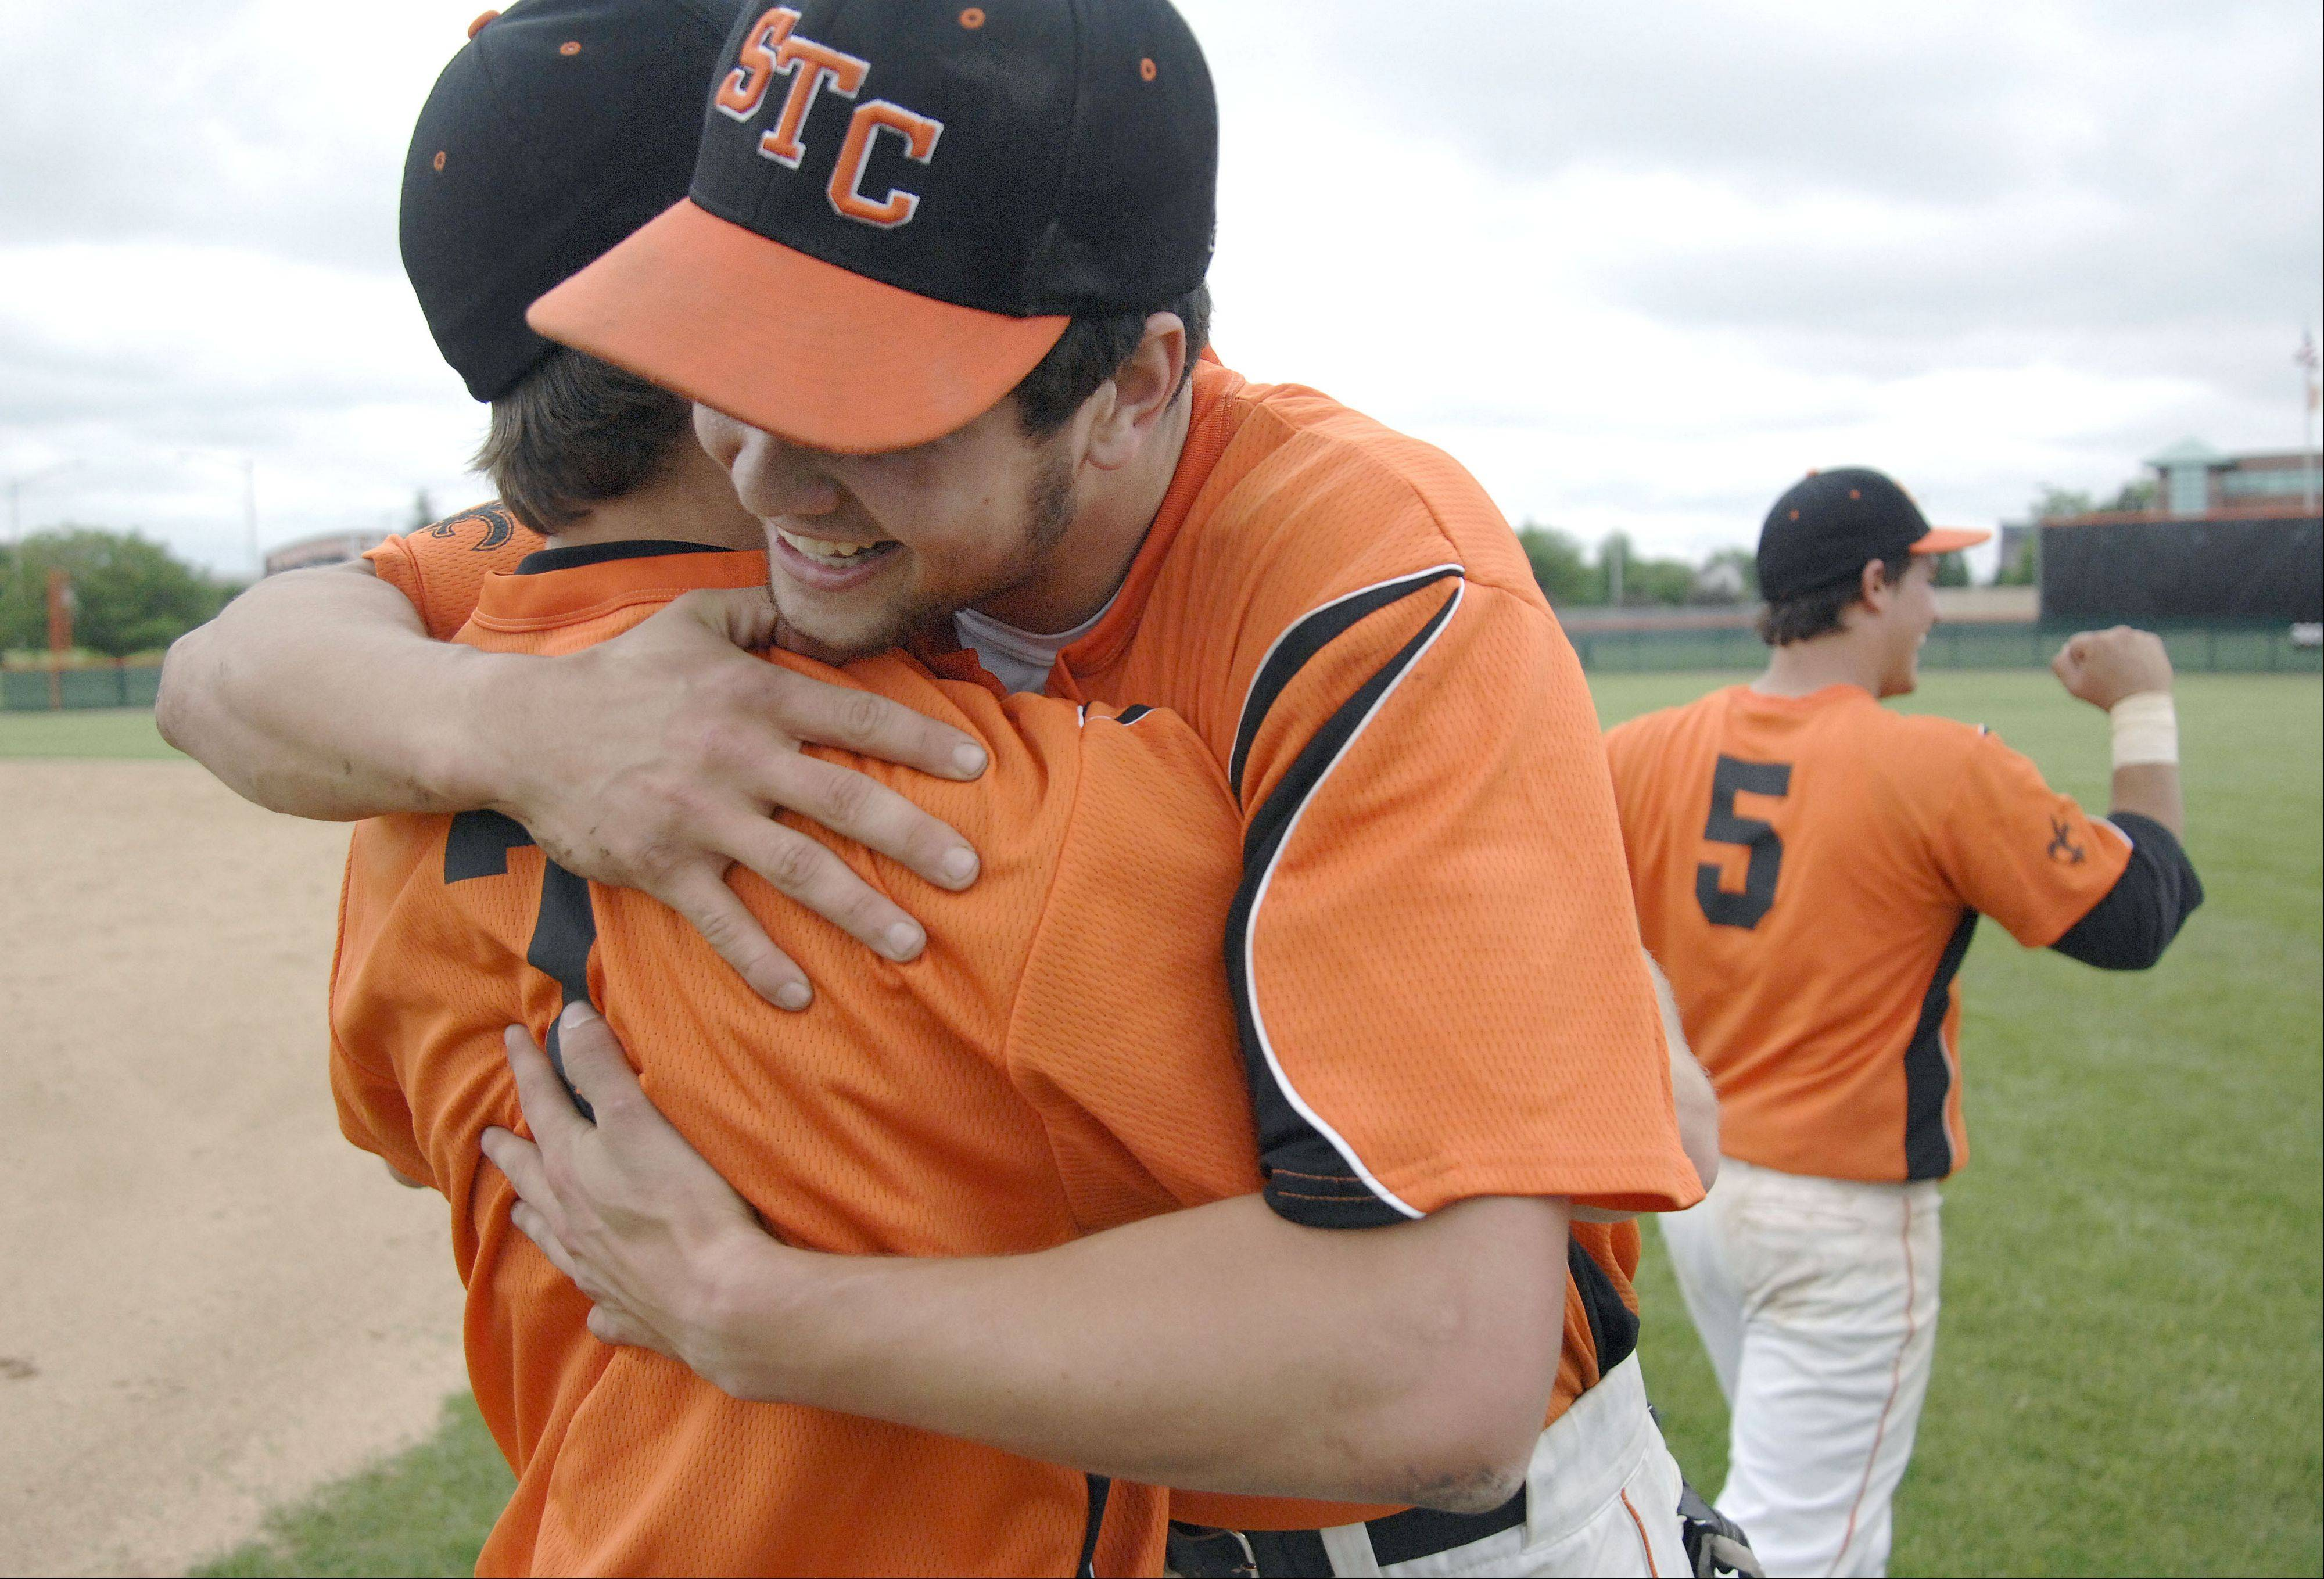 St. Charles East's Nick Huskisson (7) and Brannon Barry embrace while teammate Anthony Sciarrino pumps his fist after their Class 4A sectional championship over Wheaton North on Saturday, June 1.